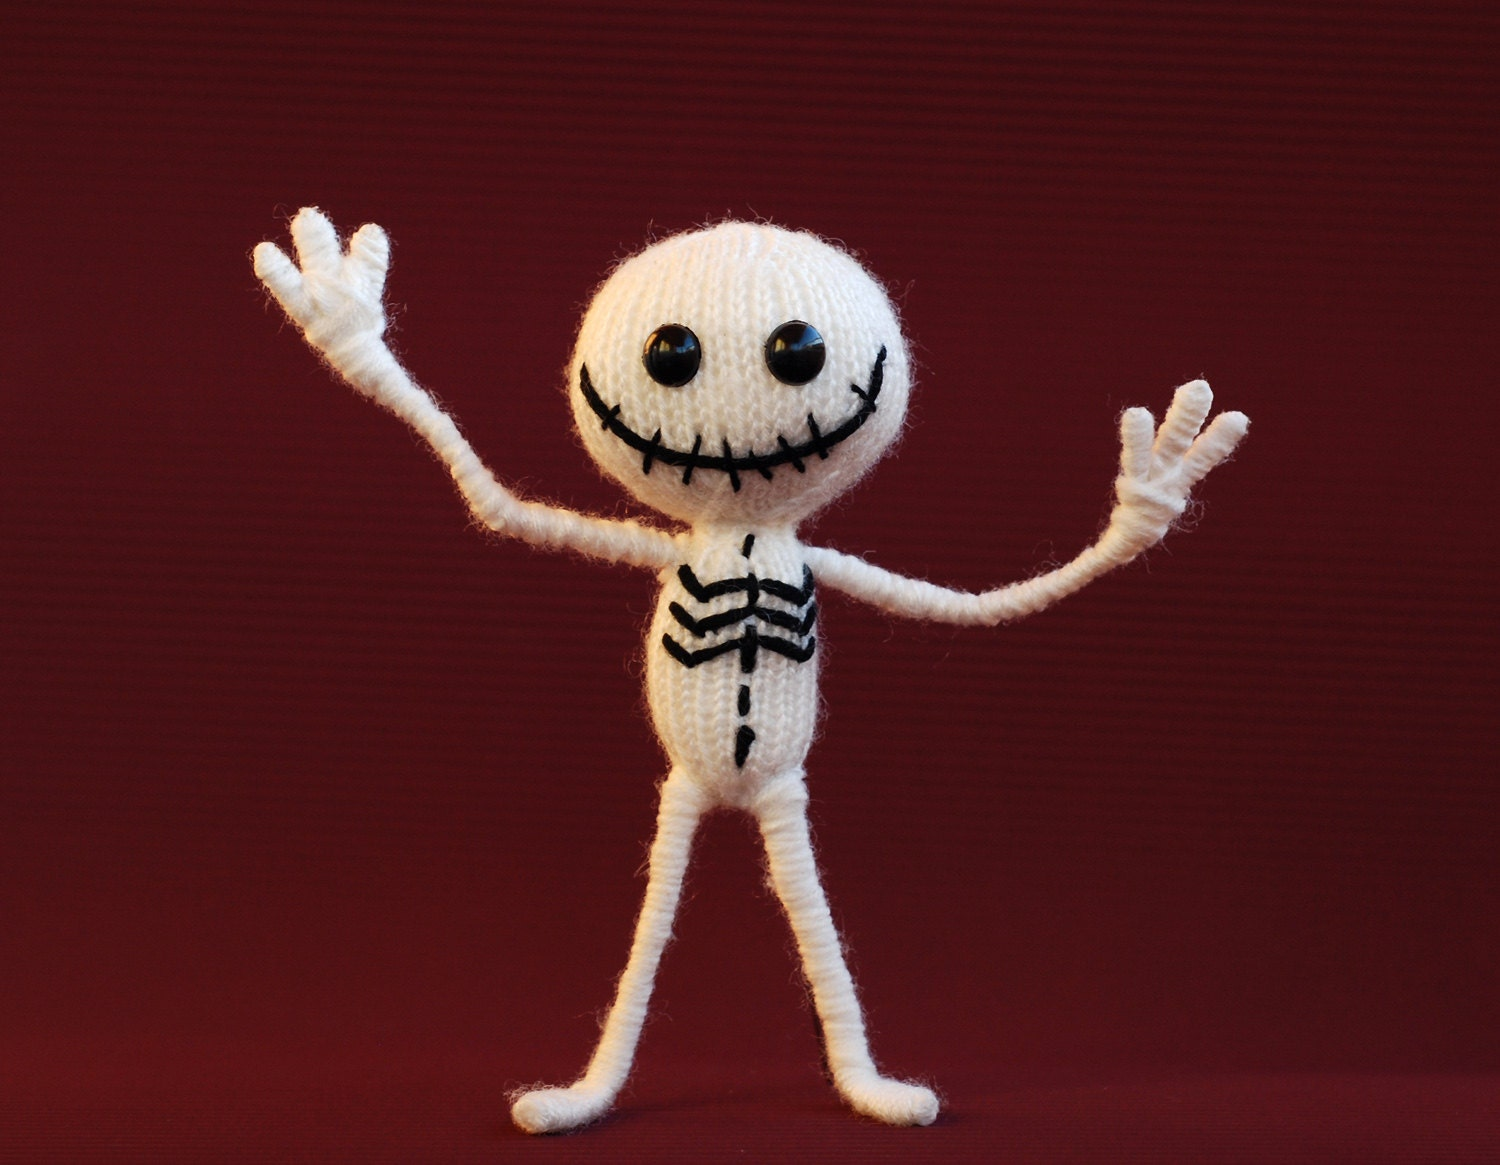 Amigurumi Wire Skeleton : Jolly skeleton. Knitting pattern knitted round. Wire by ...